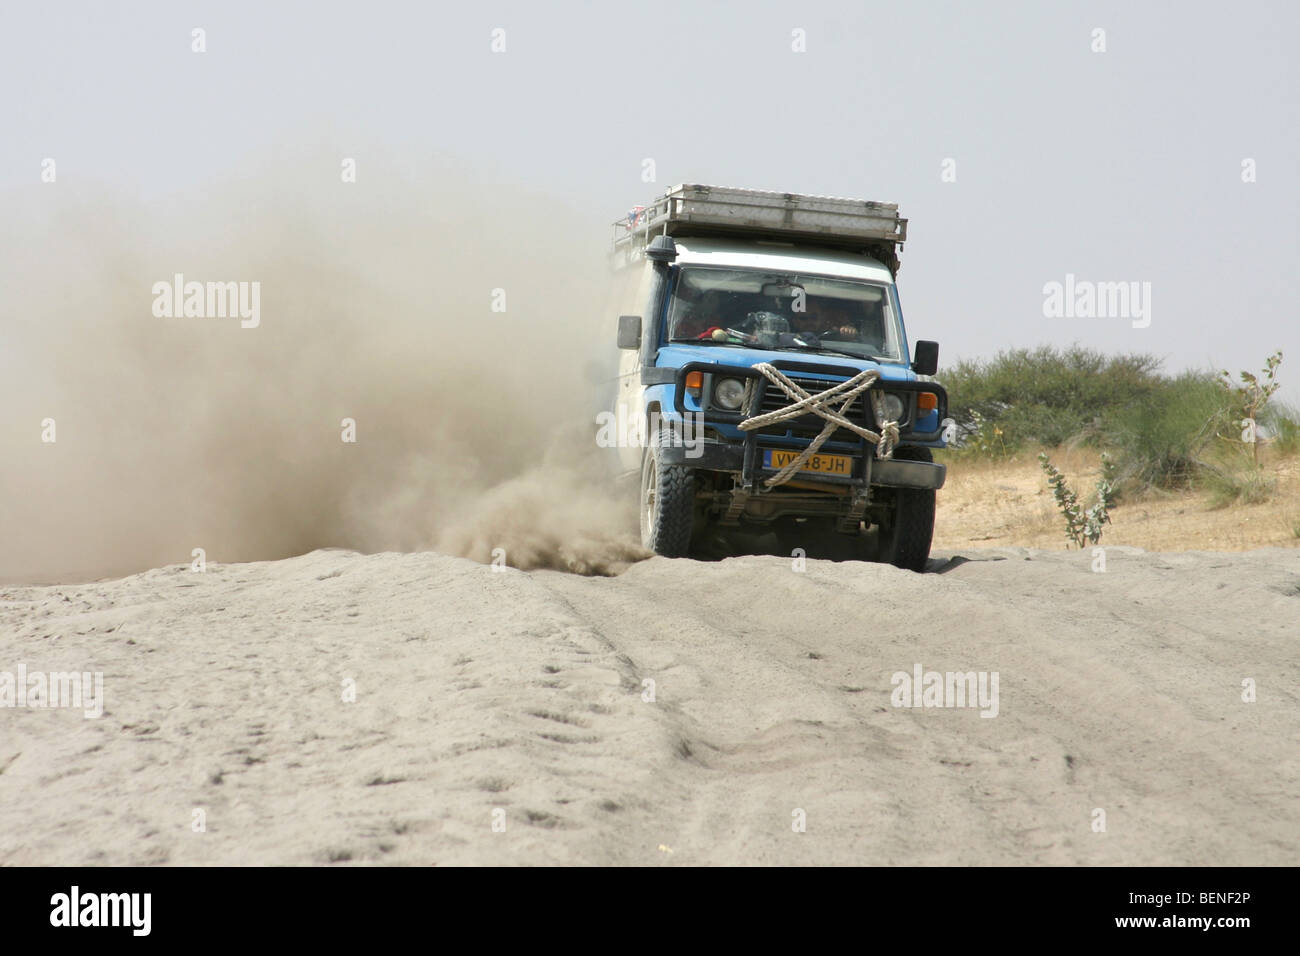 Off-road four-wheel drive vehicle driving on dirt road around Lake Chad, Central Africa - Stock Image